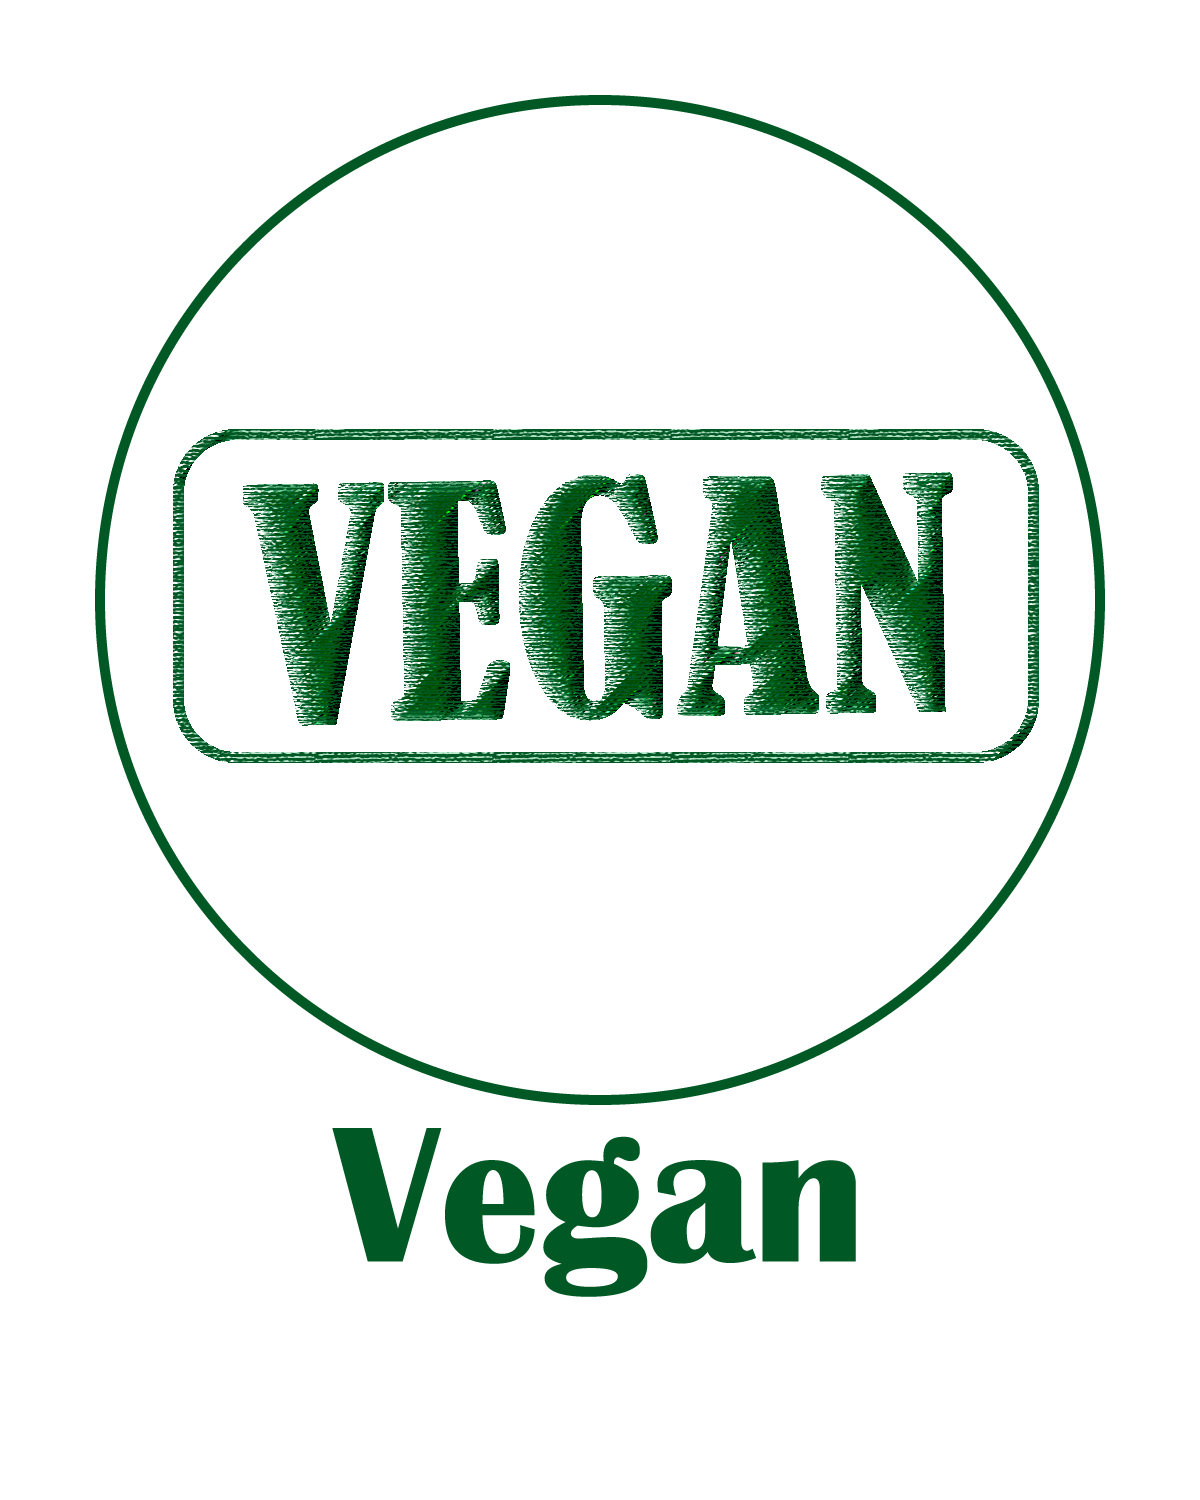 The Green Bundle Vegan Logo